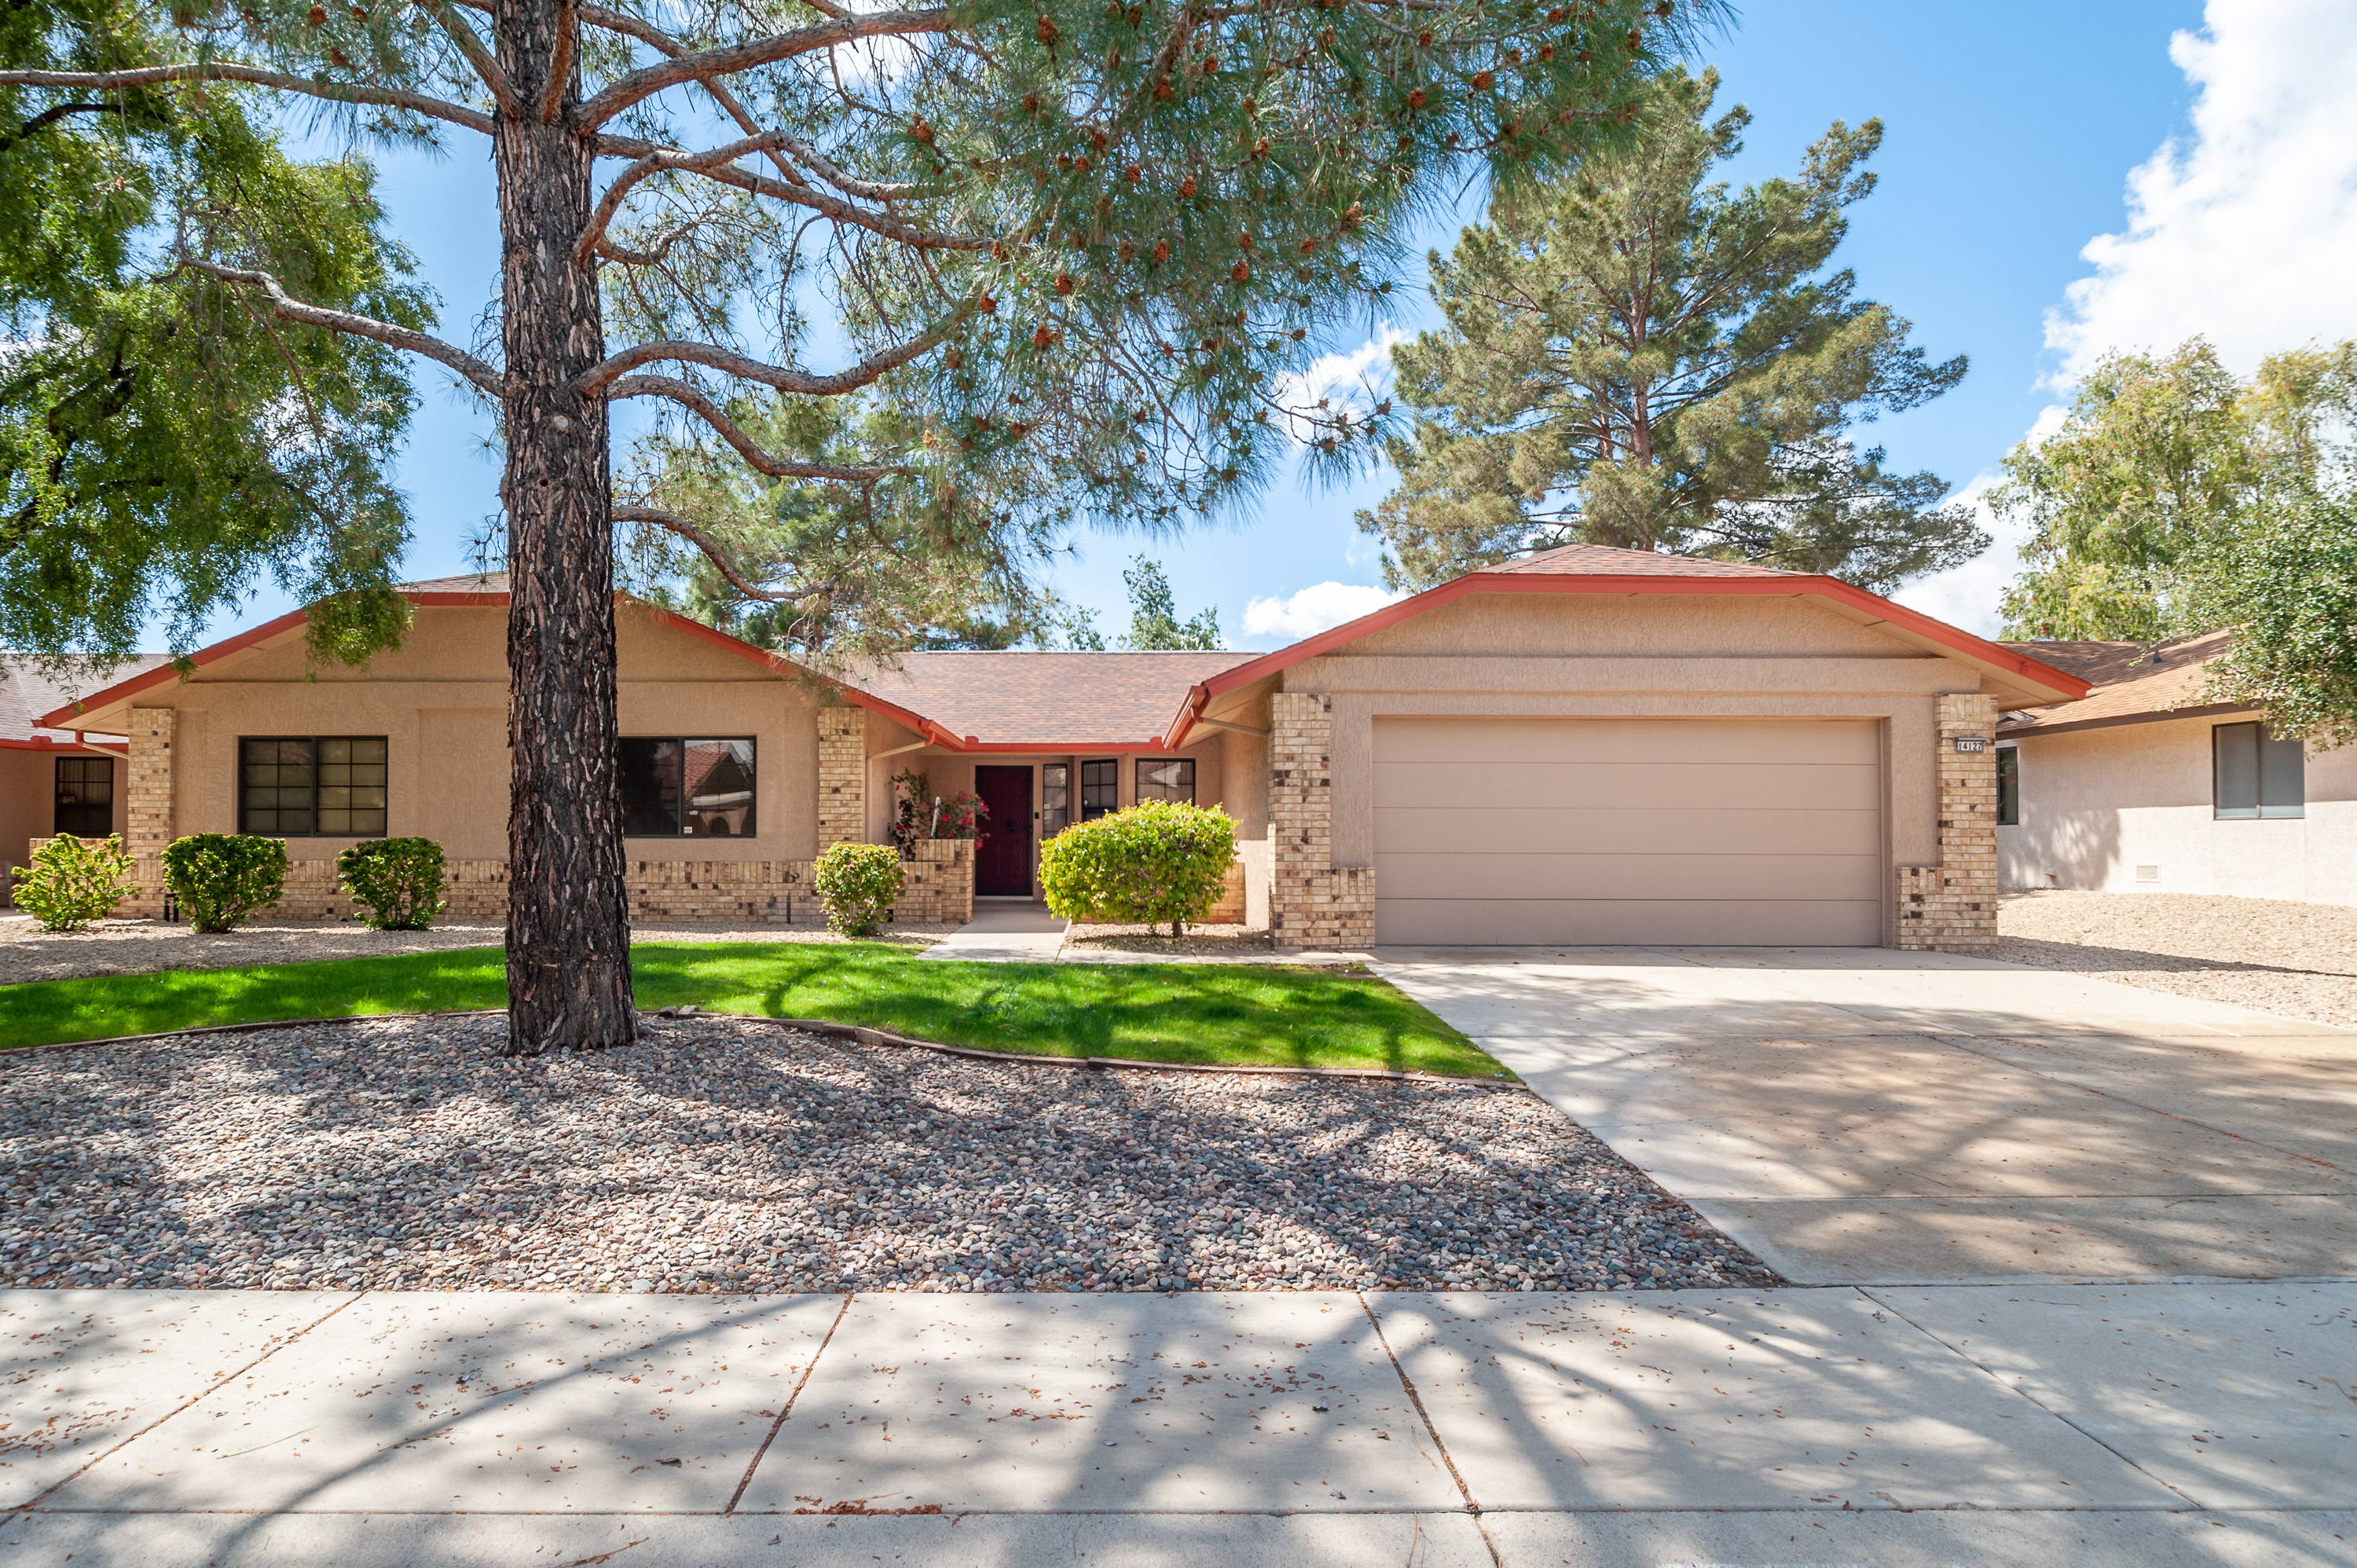 Sun City West 2 bed 2 bath home for sale